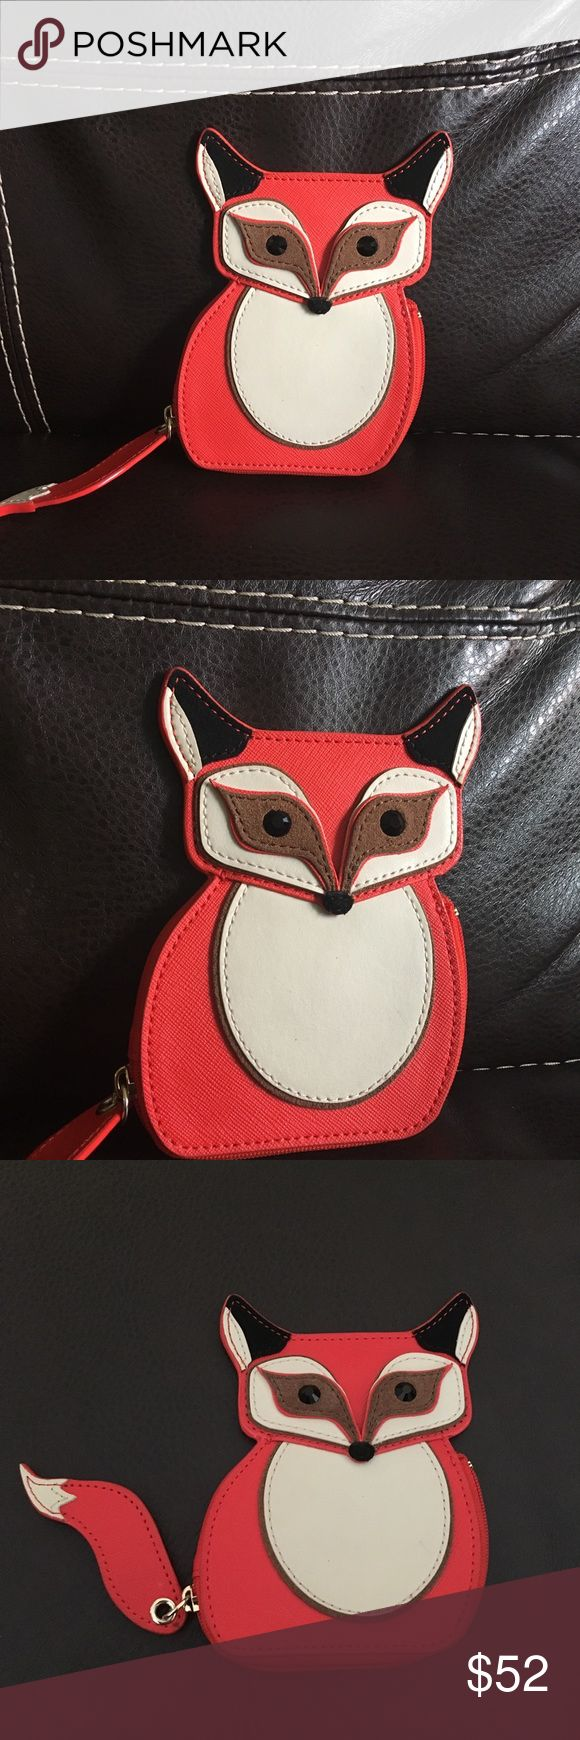 "Blaze a trail Fox coin purse 🦊 I'm selling a Kate Spade ""blaze a trail"" coin purse. I purchased this and although I love it, realized it's not practical for me. It's been used a few times. There are three small ink stains on the front as shown in picture #3. It's a beautiful coin purse to add to any collection. The price is FIRM. Please ask any questions before purchase or for additional pictures! kate spade Bags"